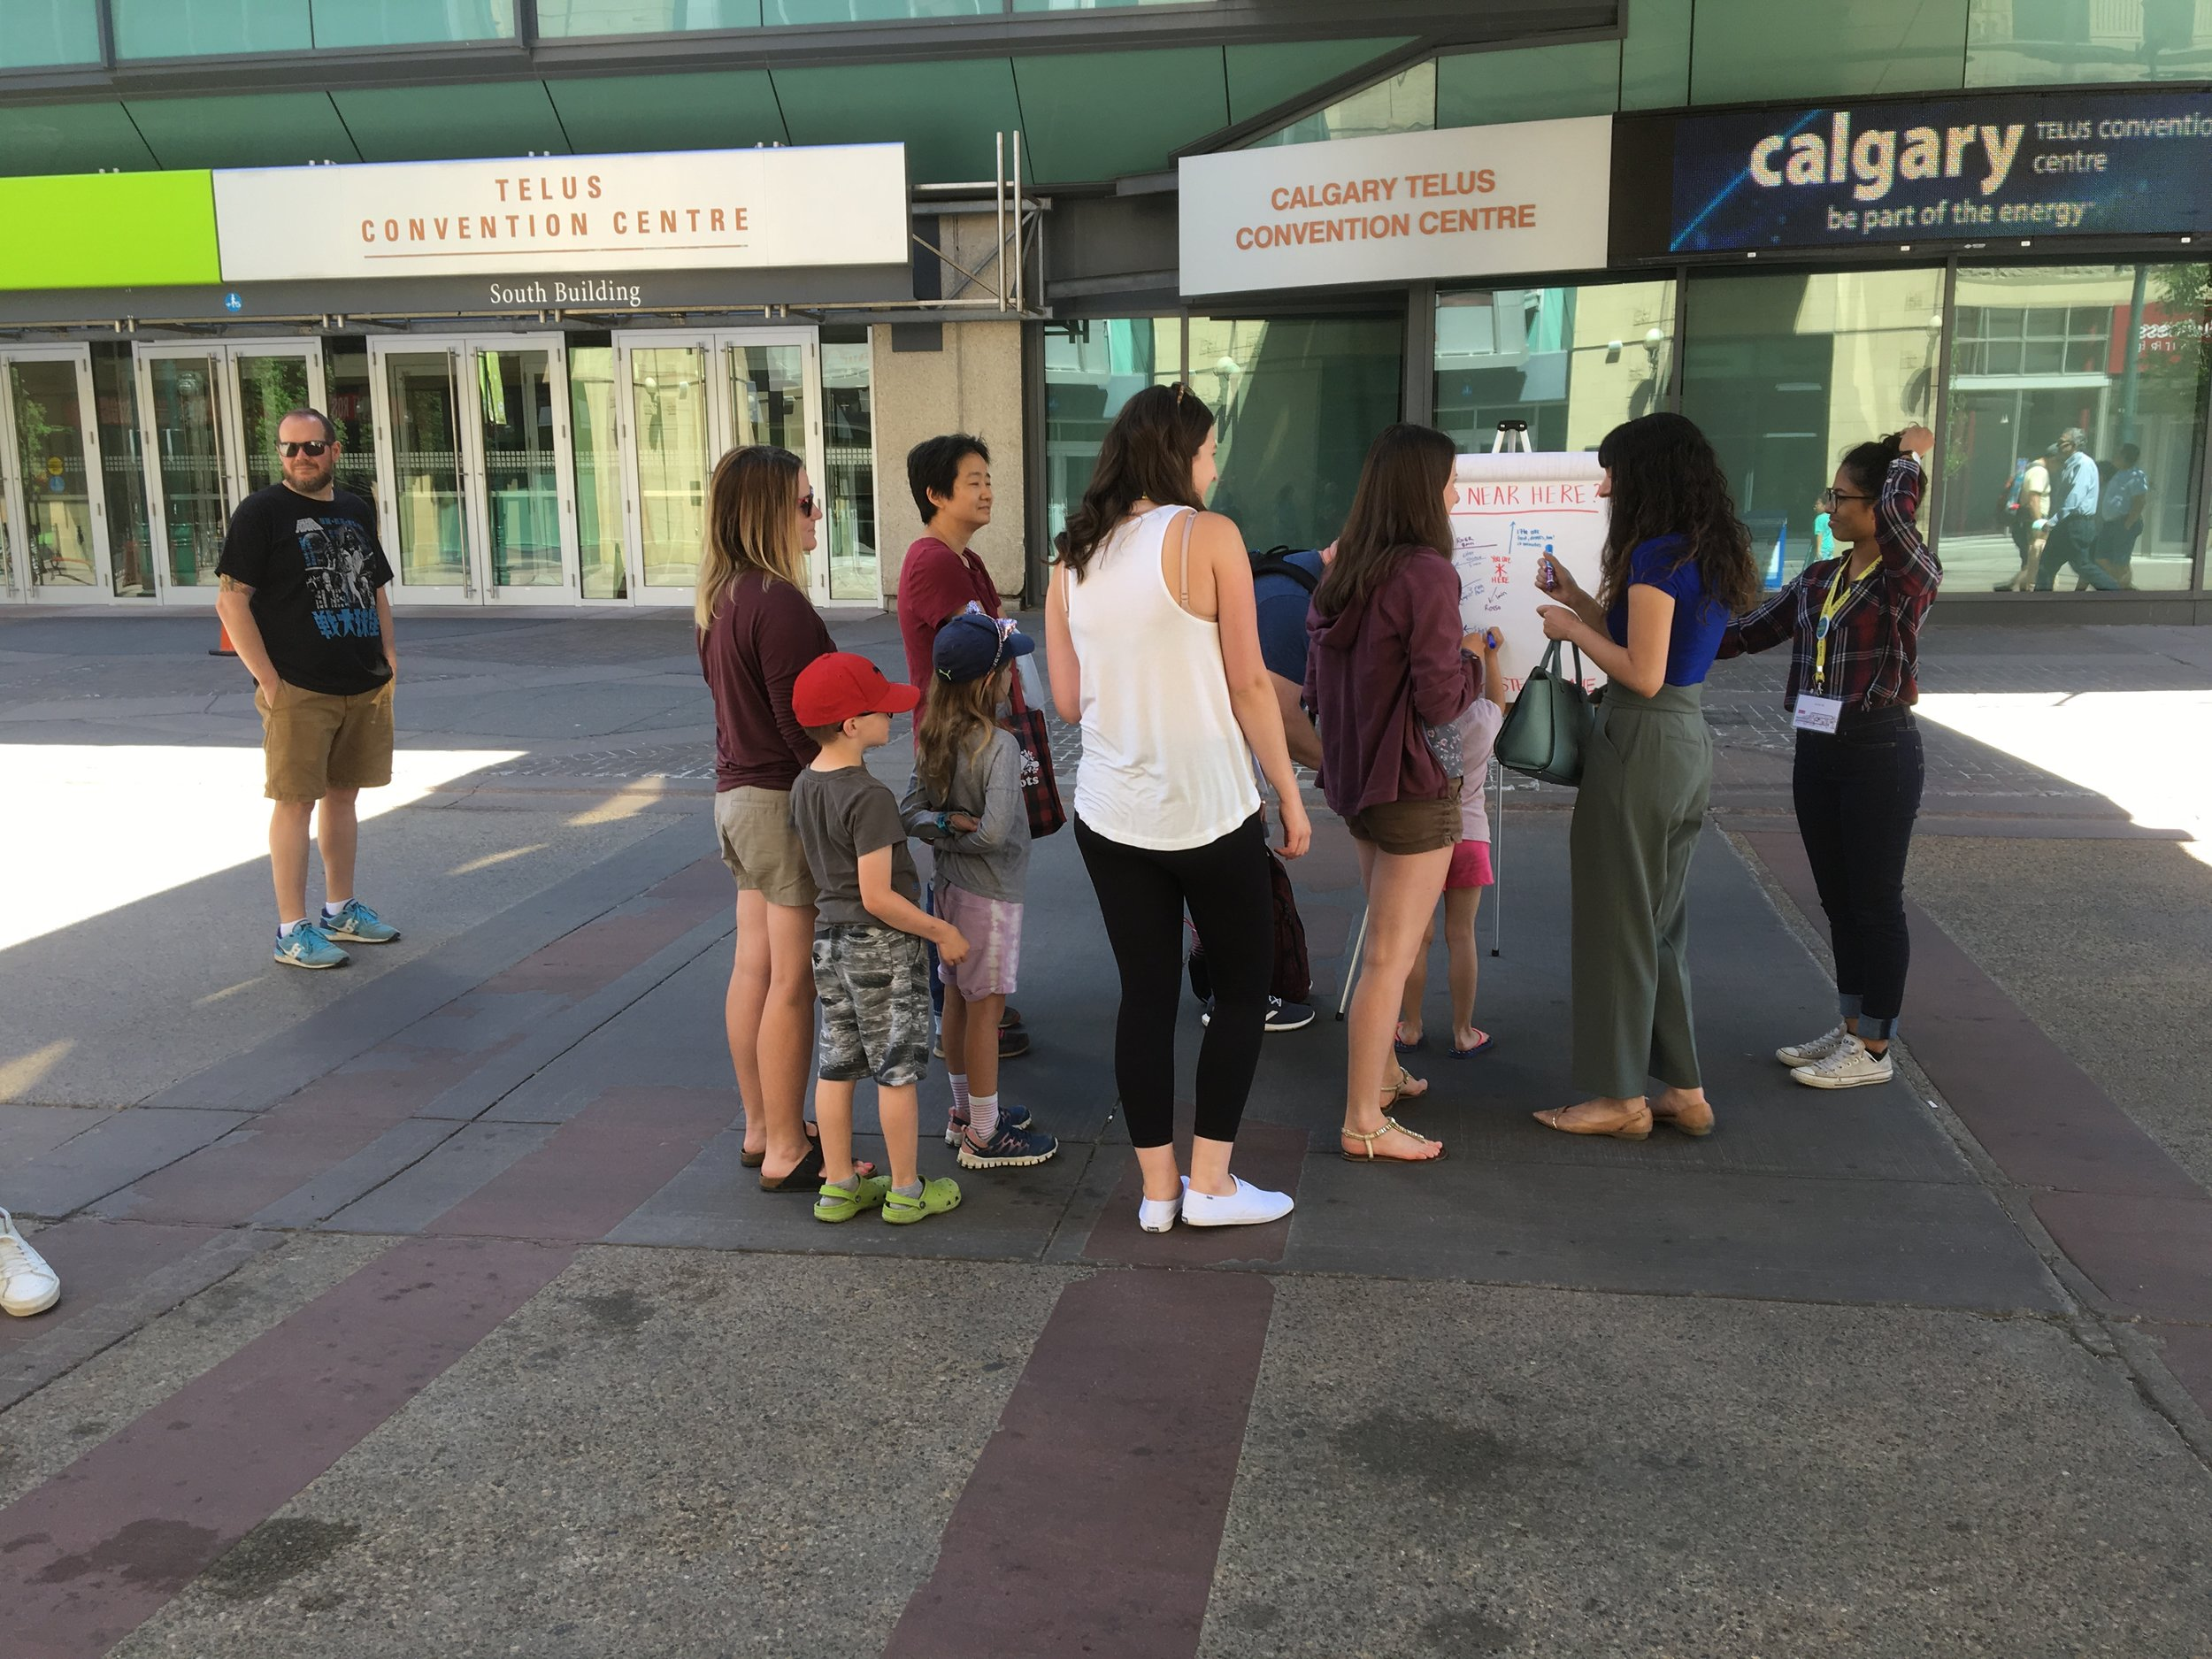 We observed and engaged with people interacting with the board on Stephen Avenue, with a low-fidelity version of a Near Here board.